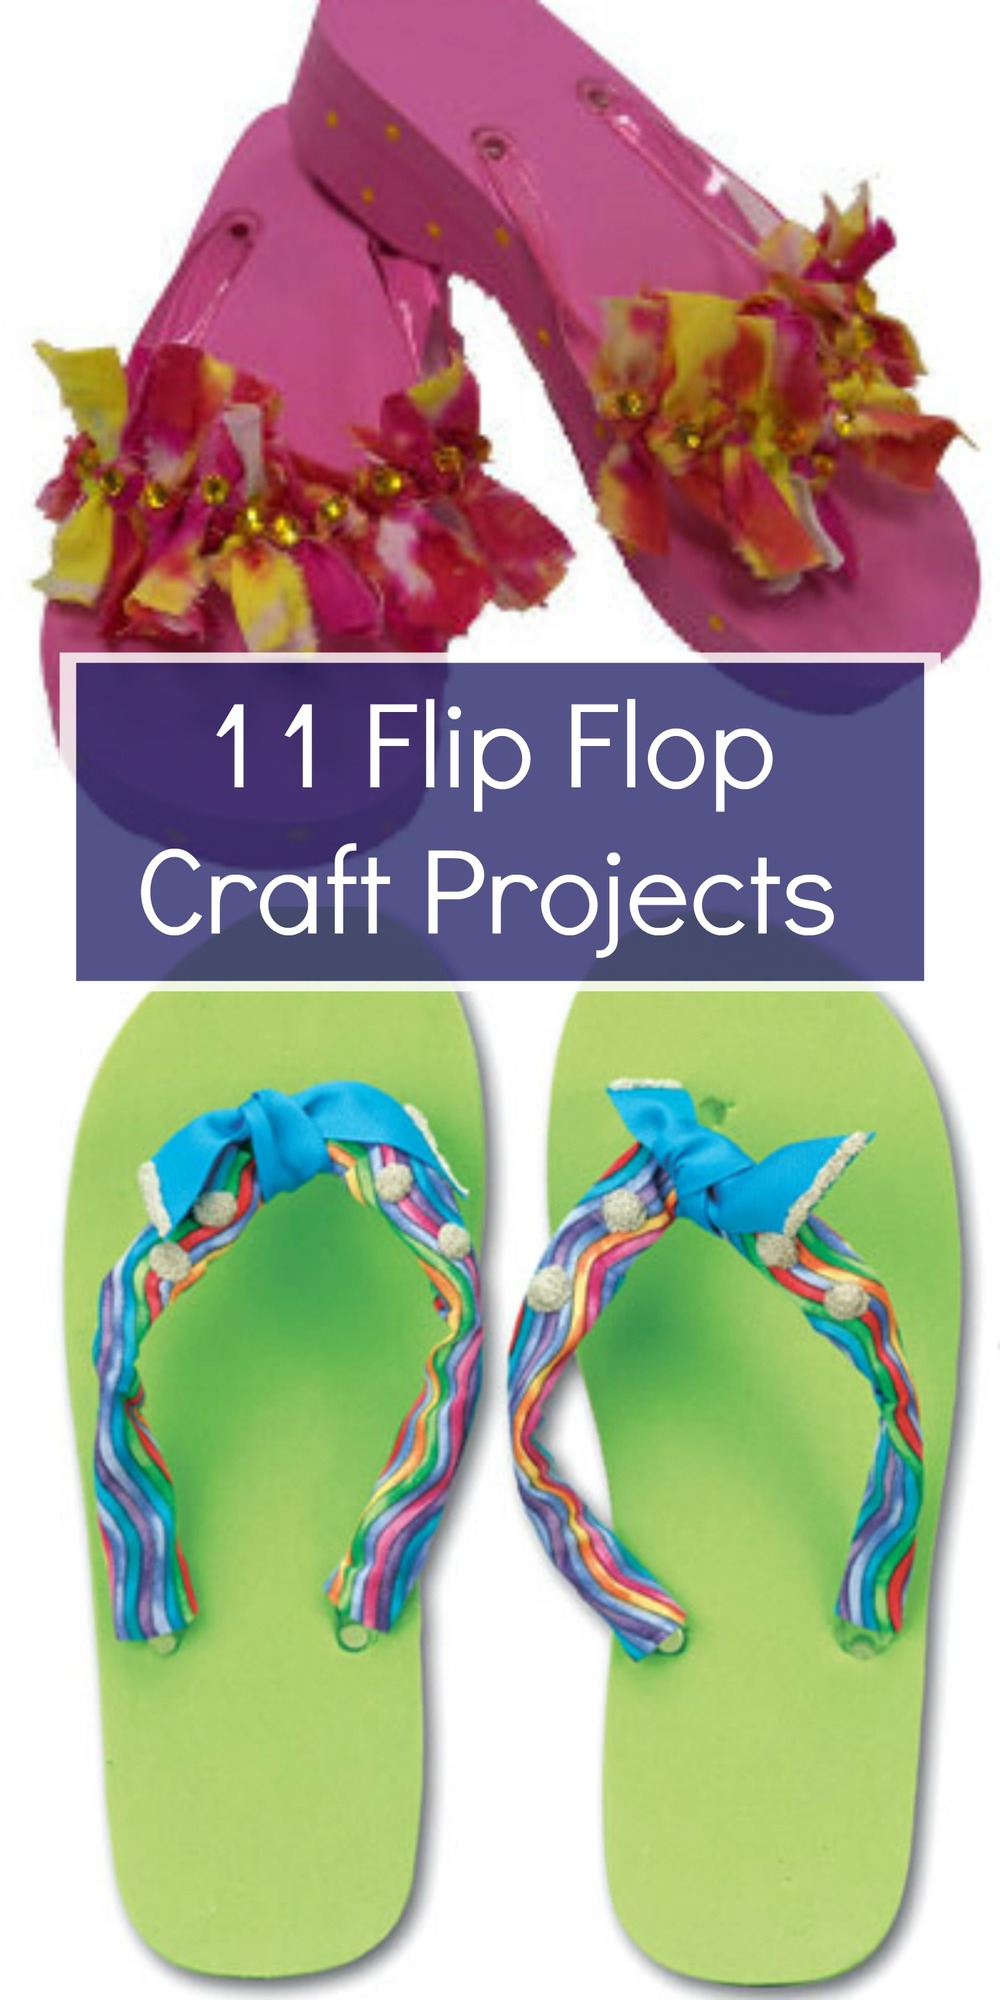 11 Flip Flop Craft Projects FaveCrafts